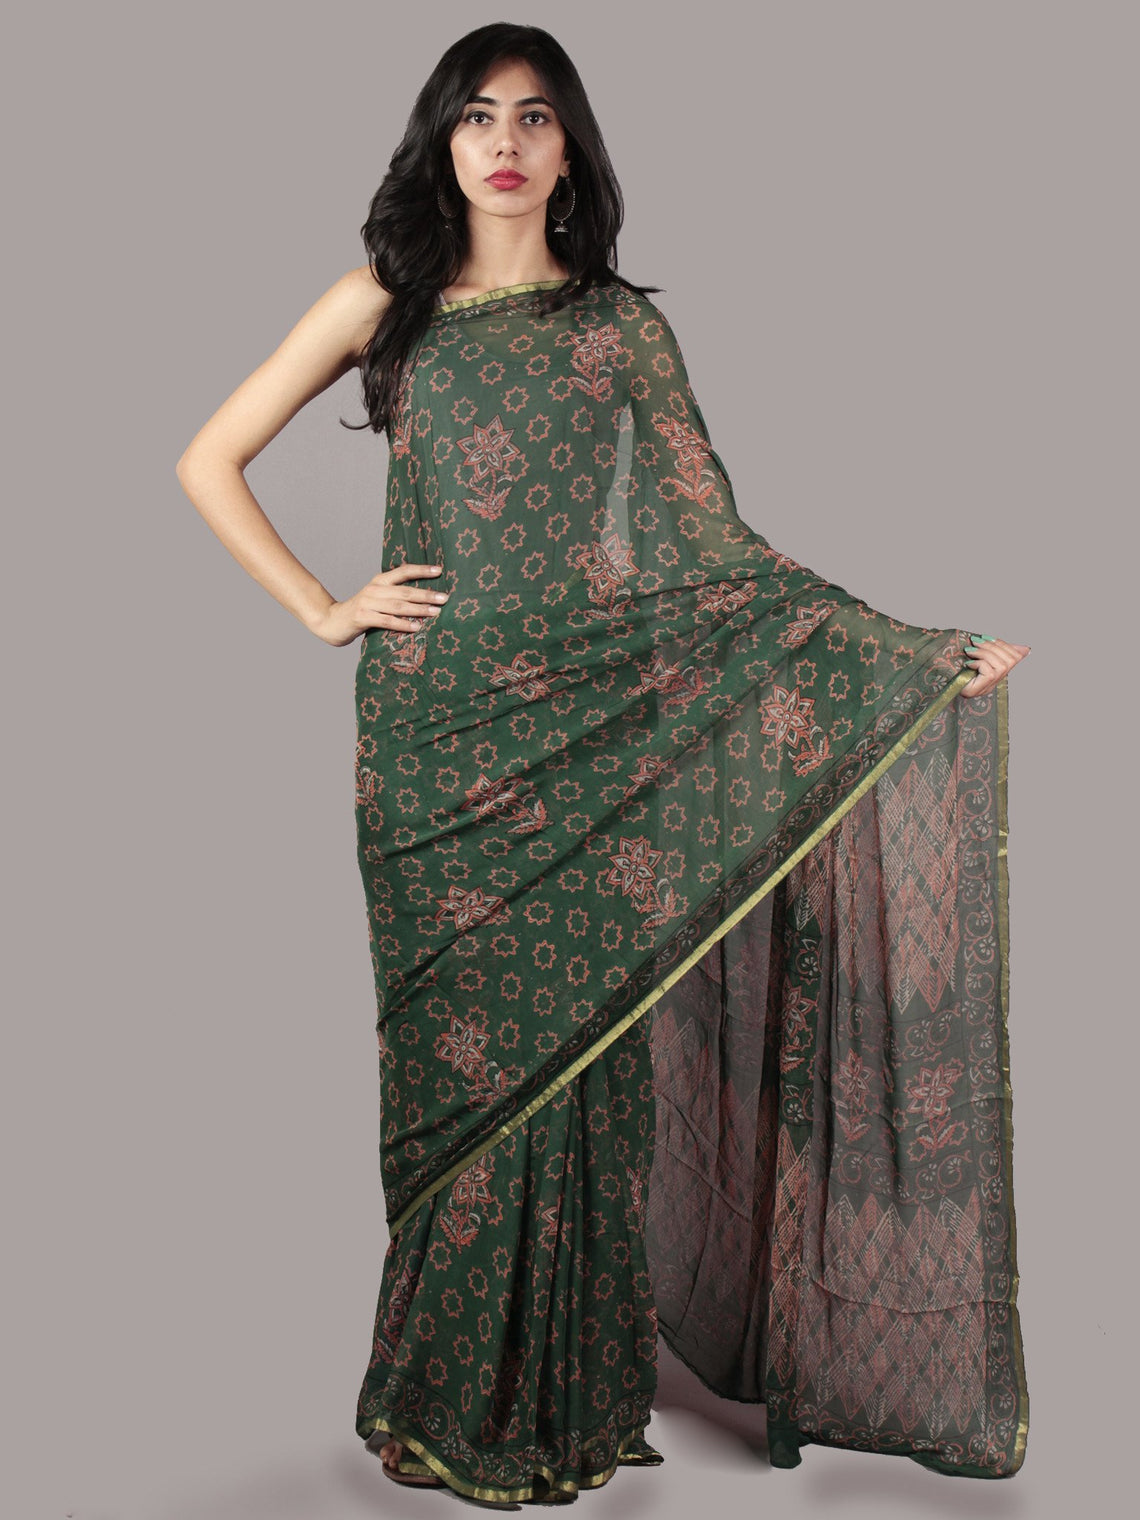 Hunter Green Pink Hand Block Printed Chiffon Saree - S031701864